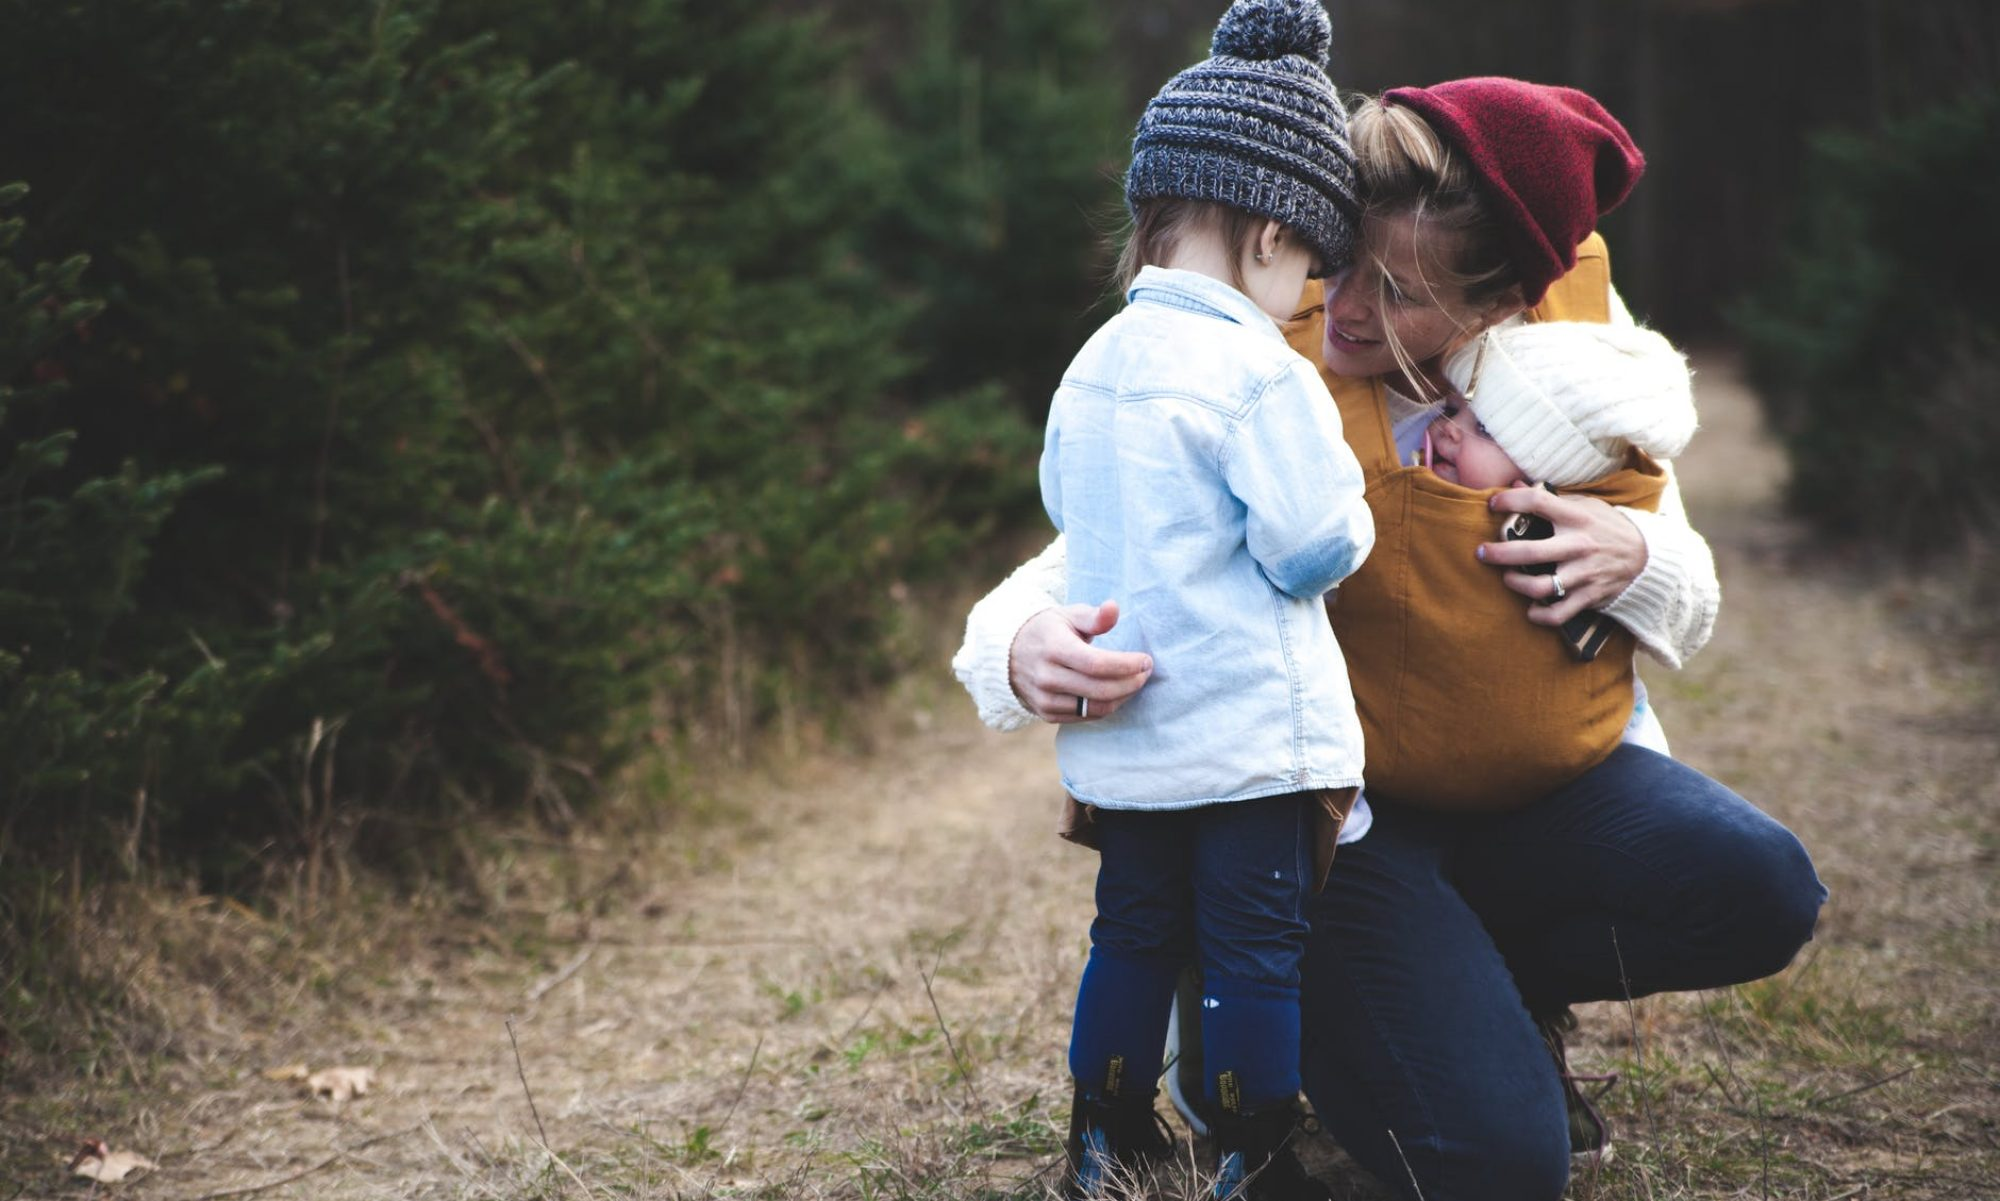 Toronto Child and Family Therapy Services